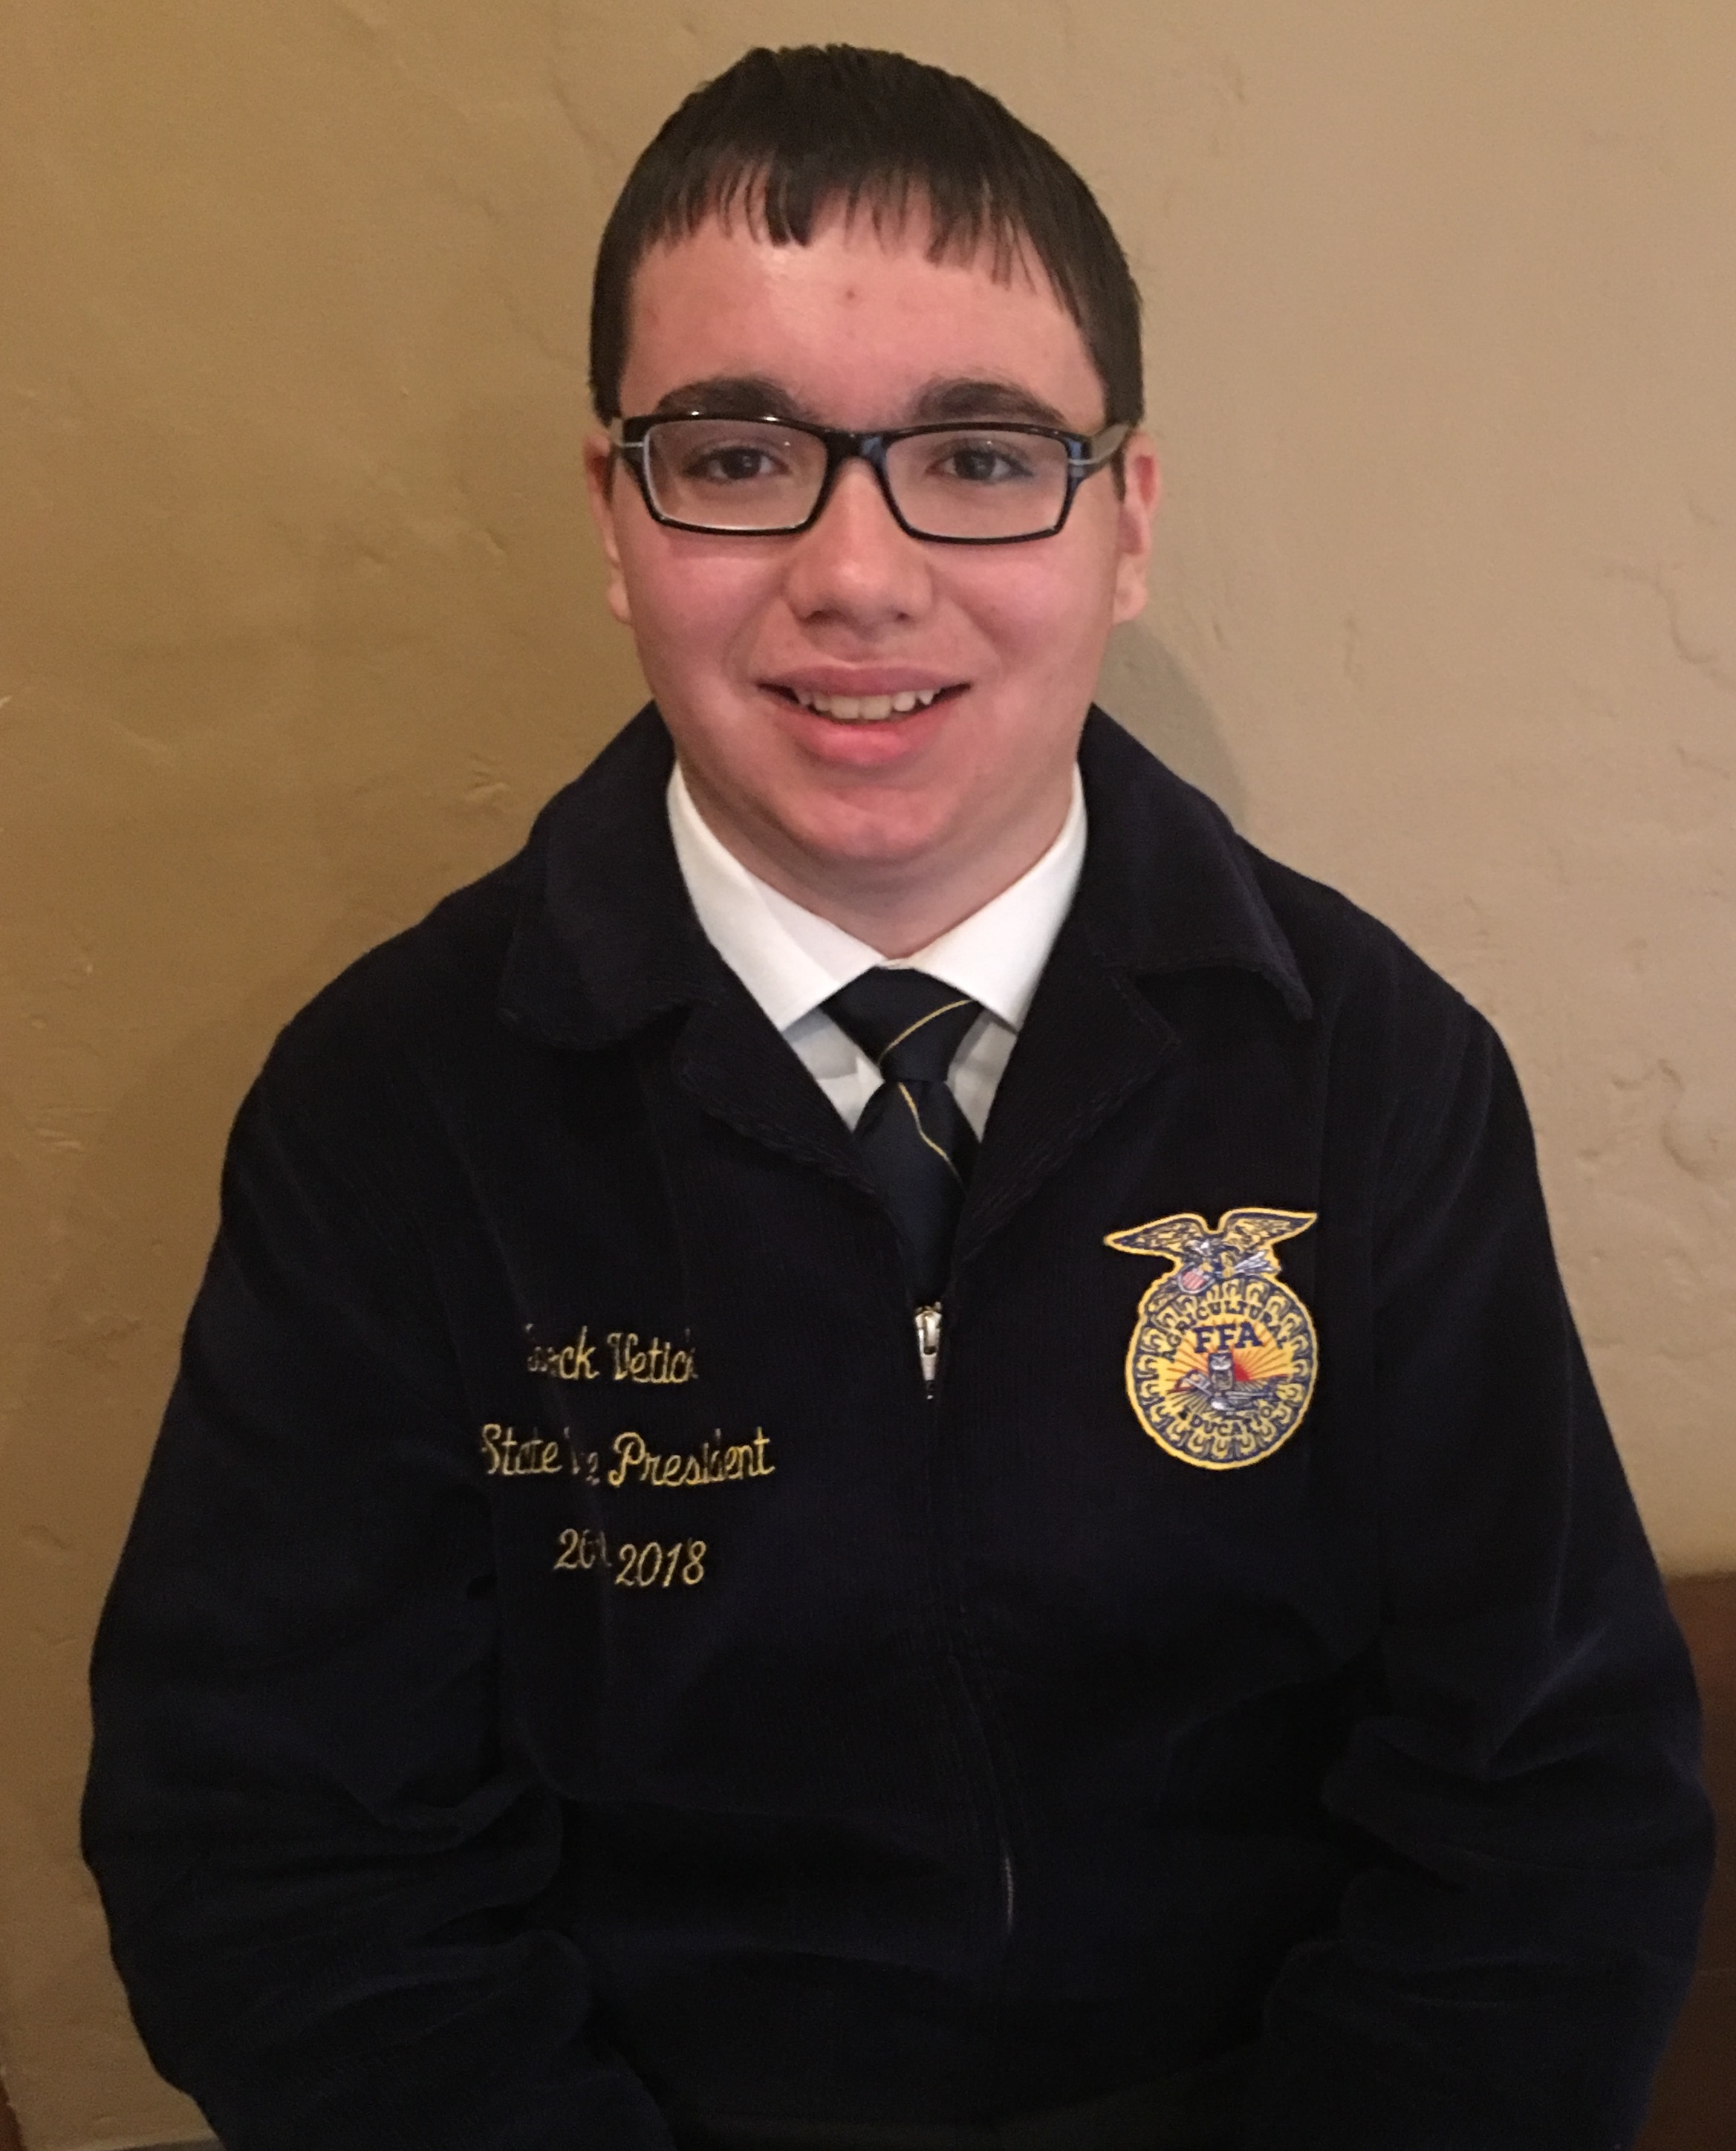 Meet Your 2017-18 State Officer: Brock Vetick